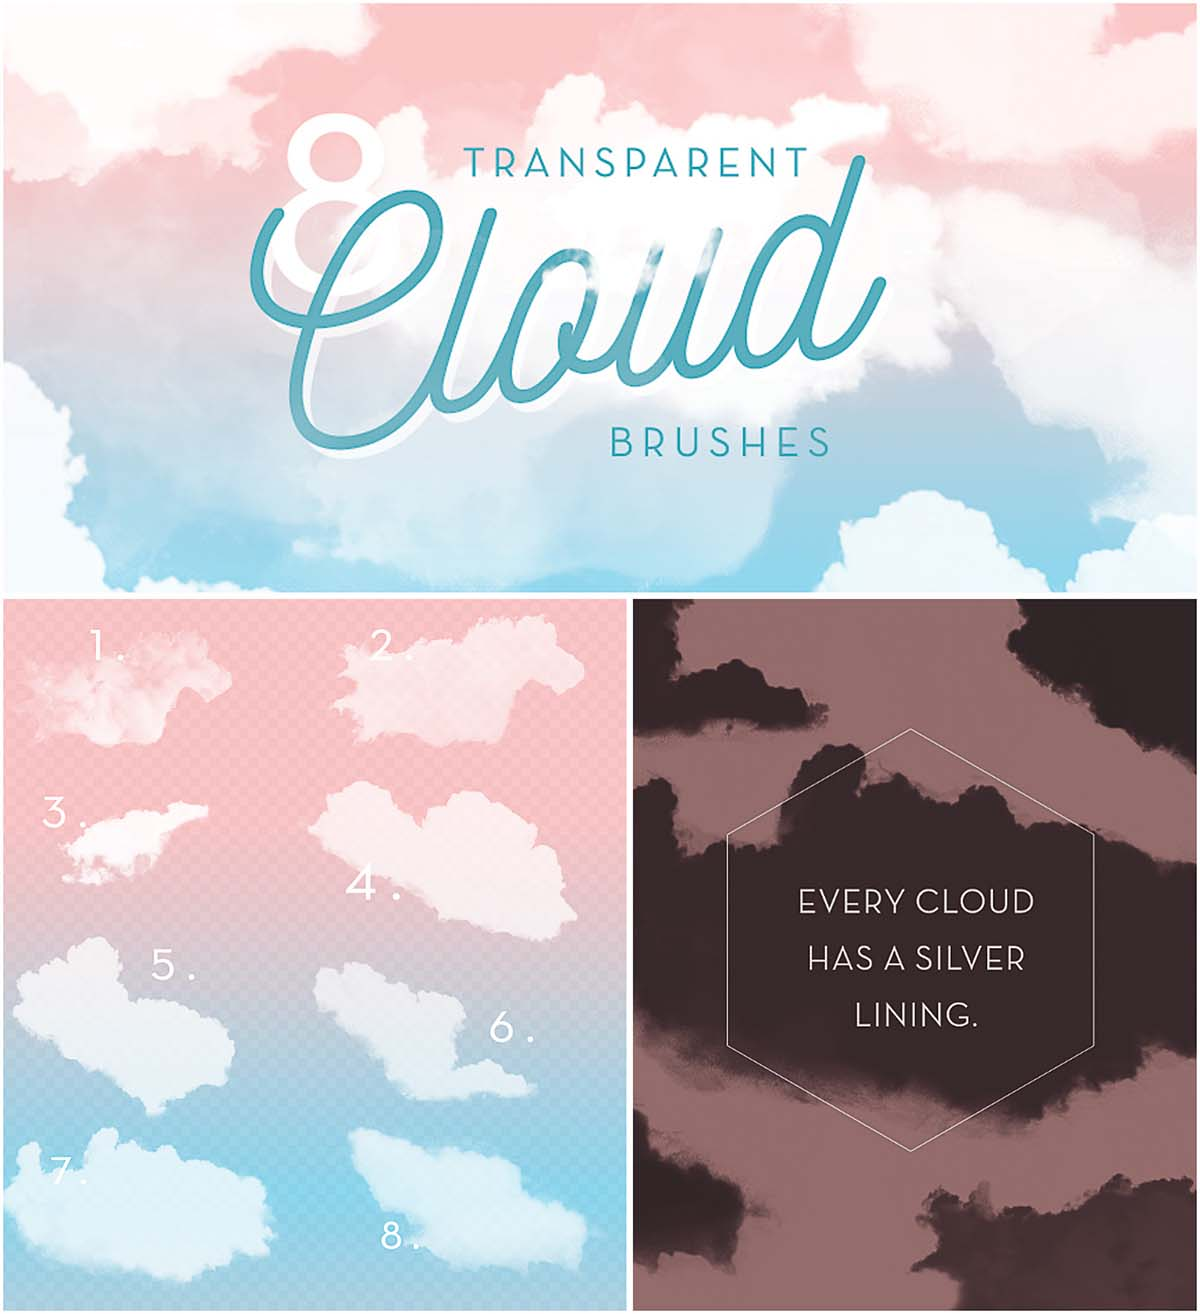 Transparent clouds brushes set